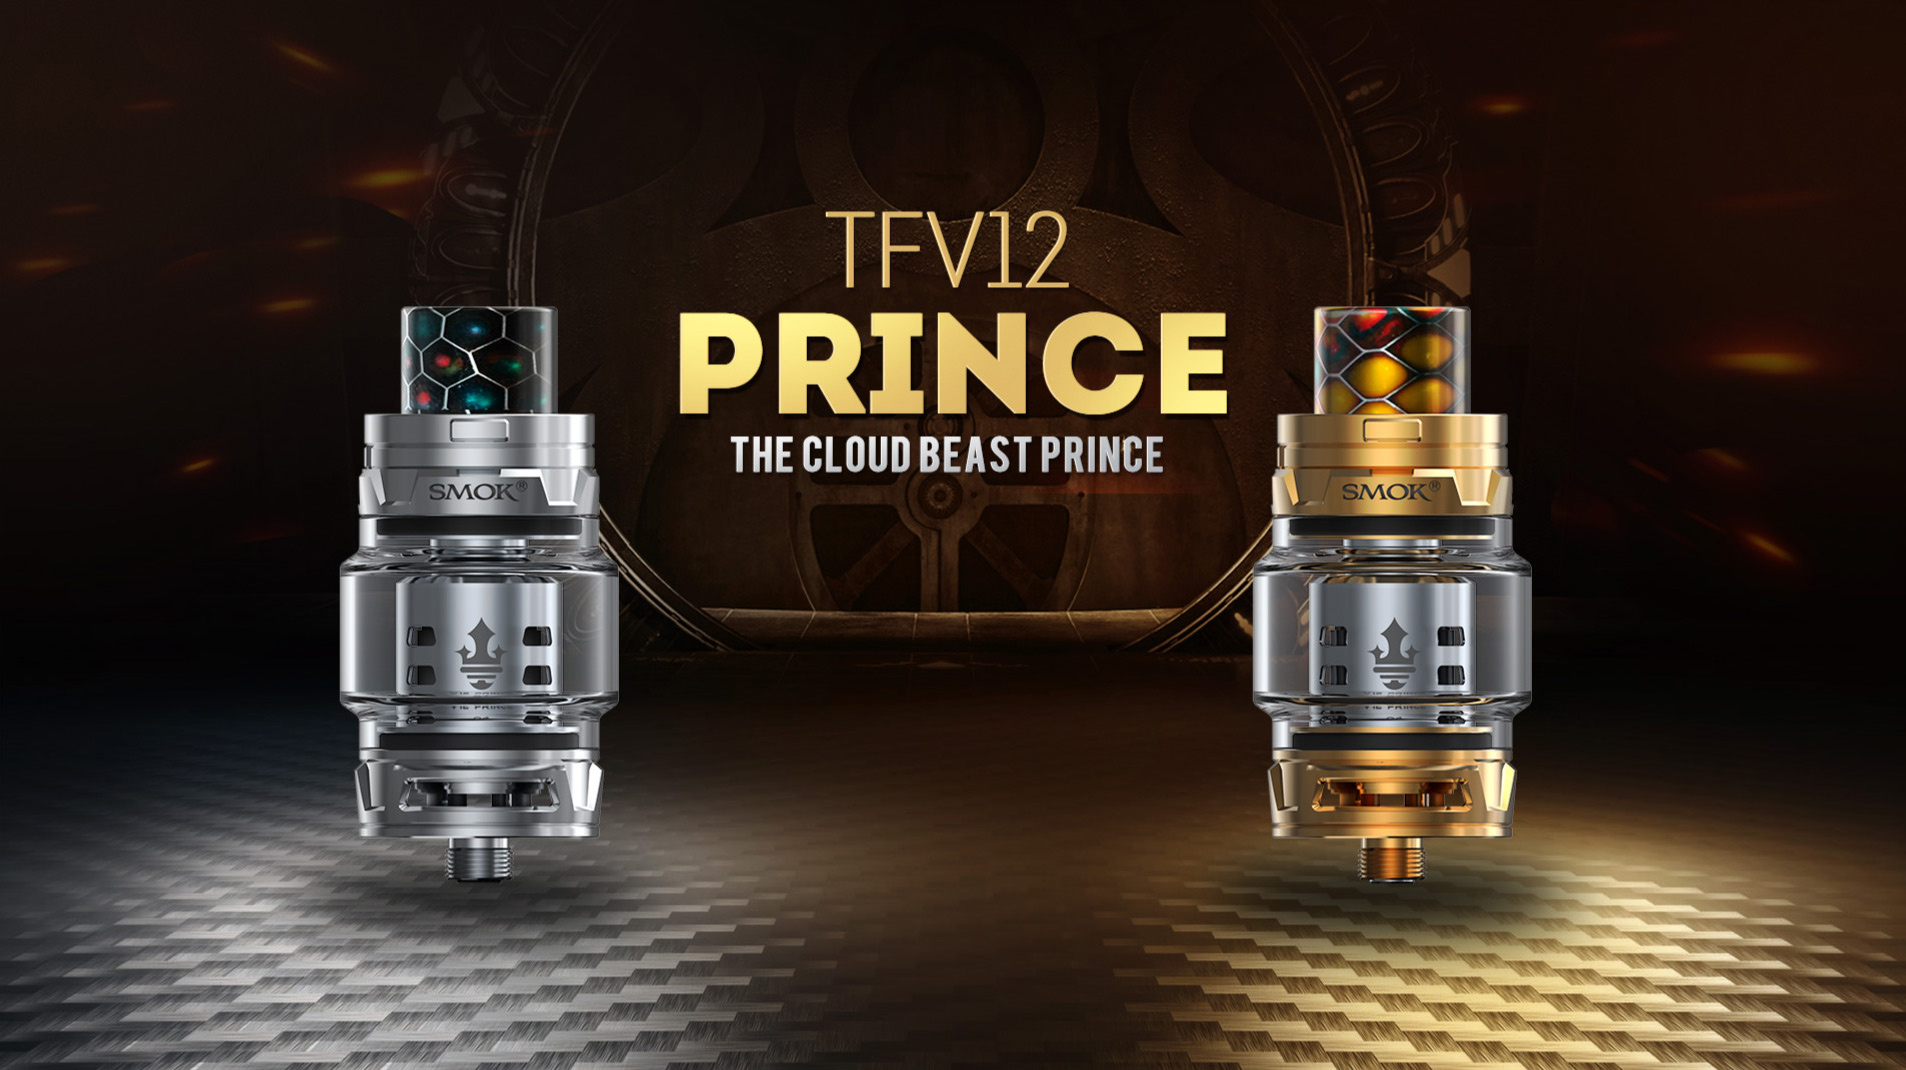 SMOK TFV12 Prince Coils T10  0.12ohm -3 Pack - Available from Mighty Vape